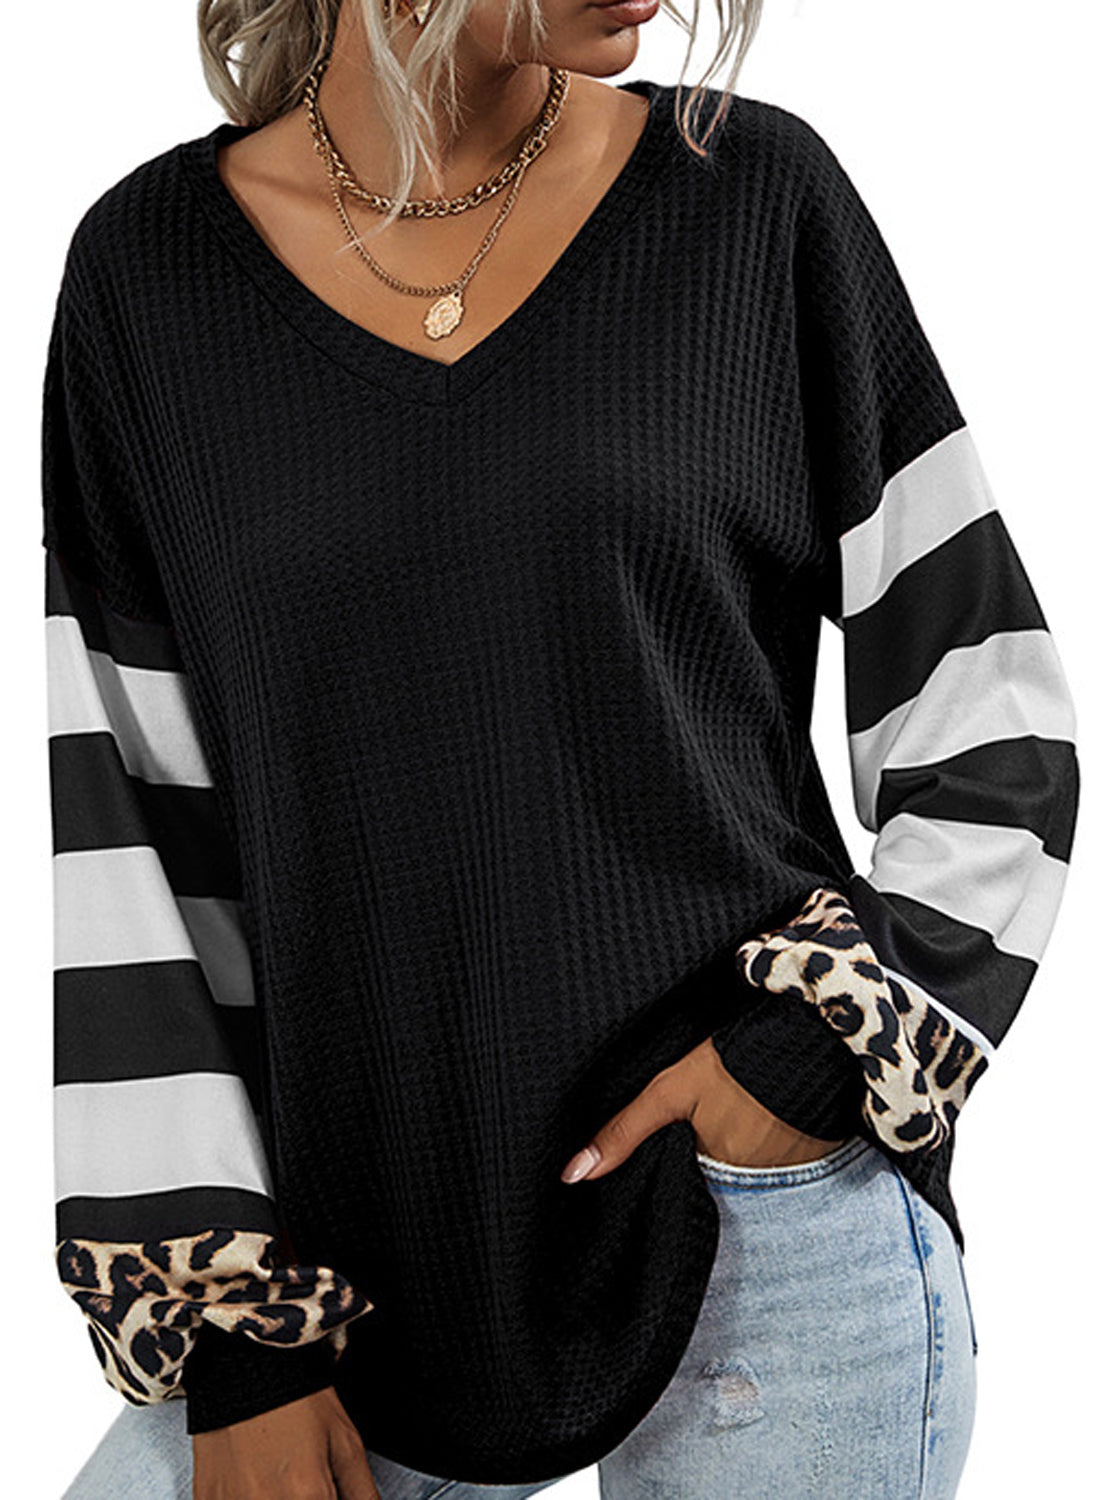 Women's Waffle Oversized Sweatshirt Blouse Tunic Tops